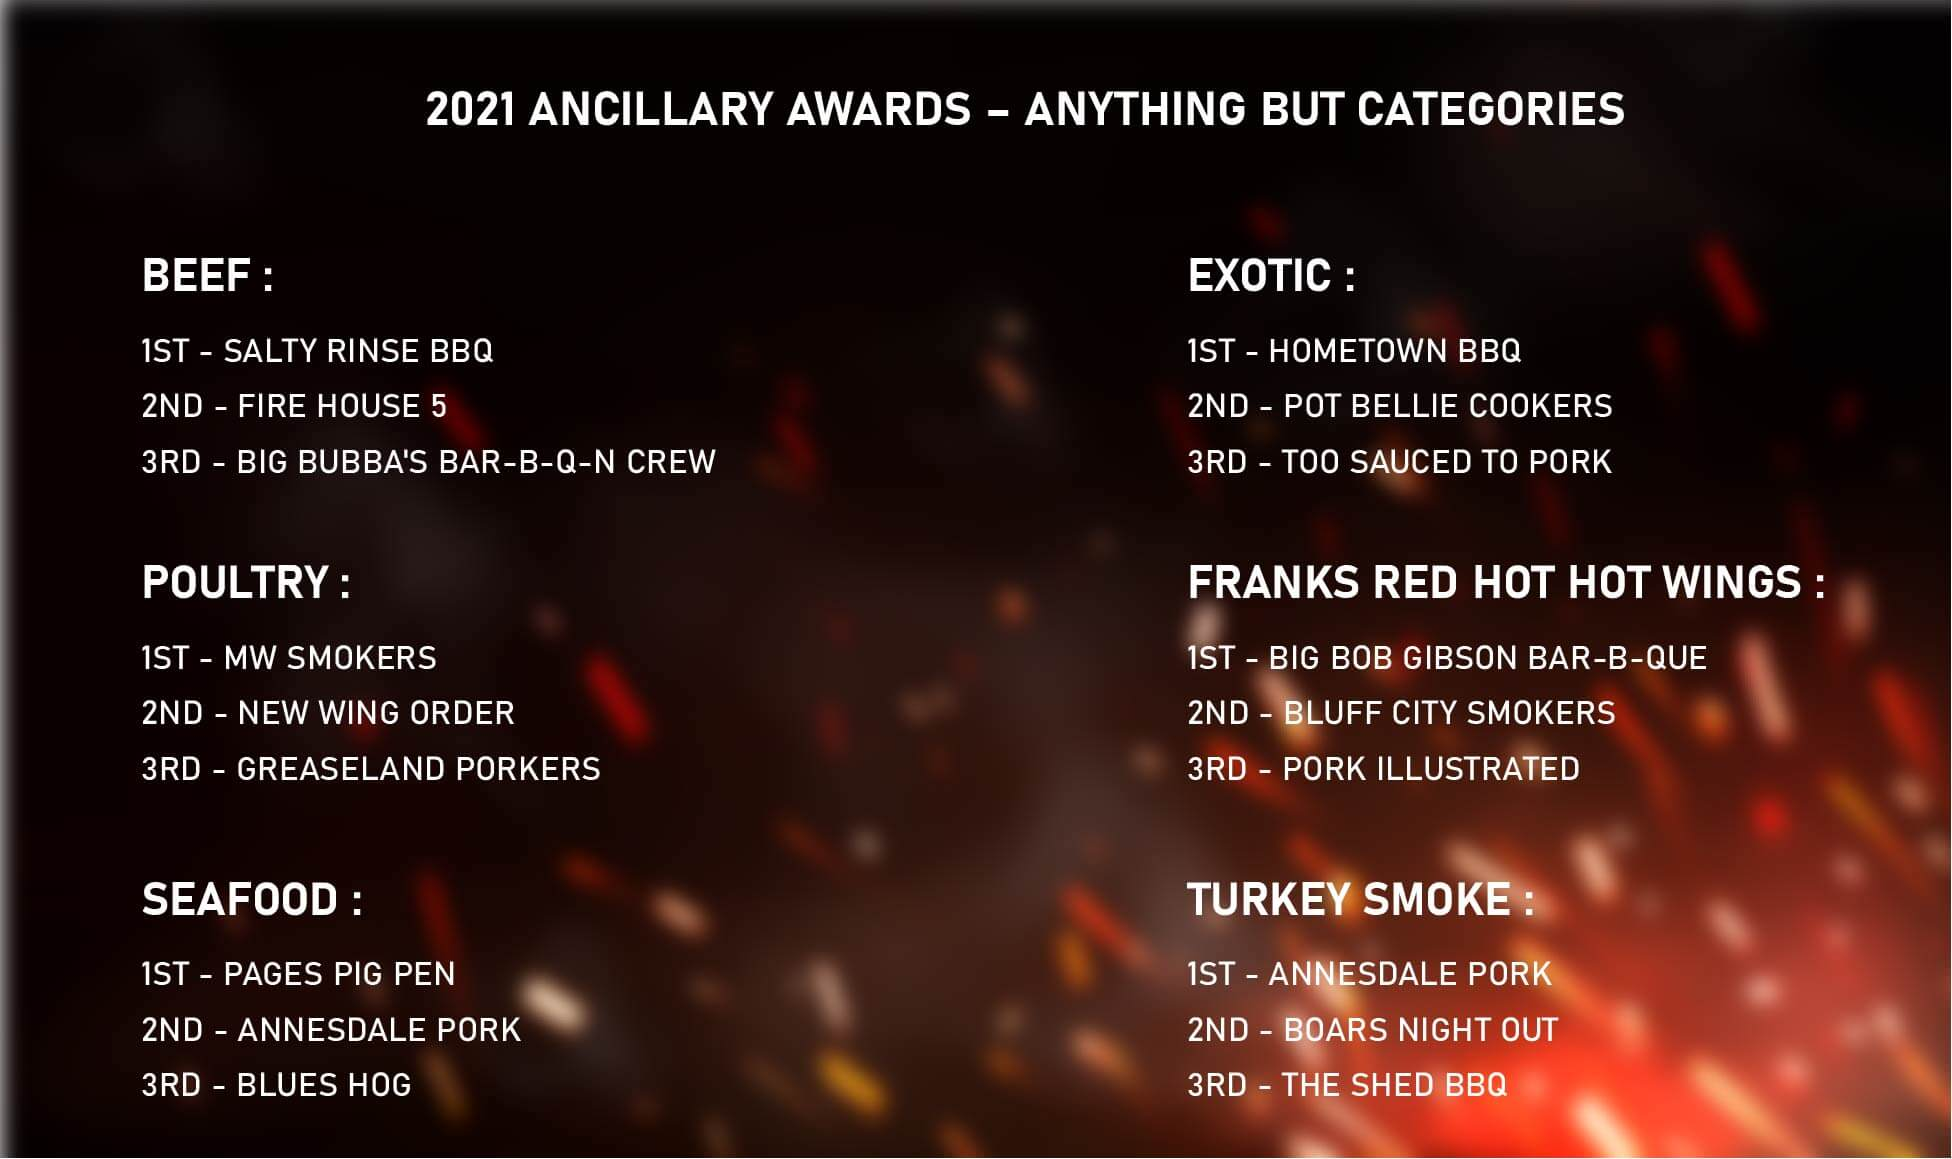 2021 Ancillary Awards – Anything but categories winners